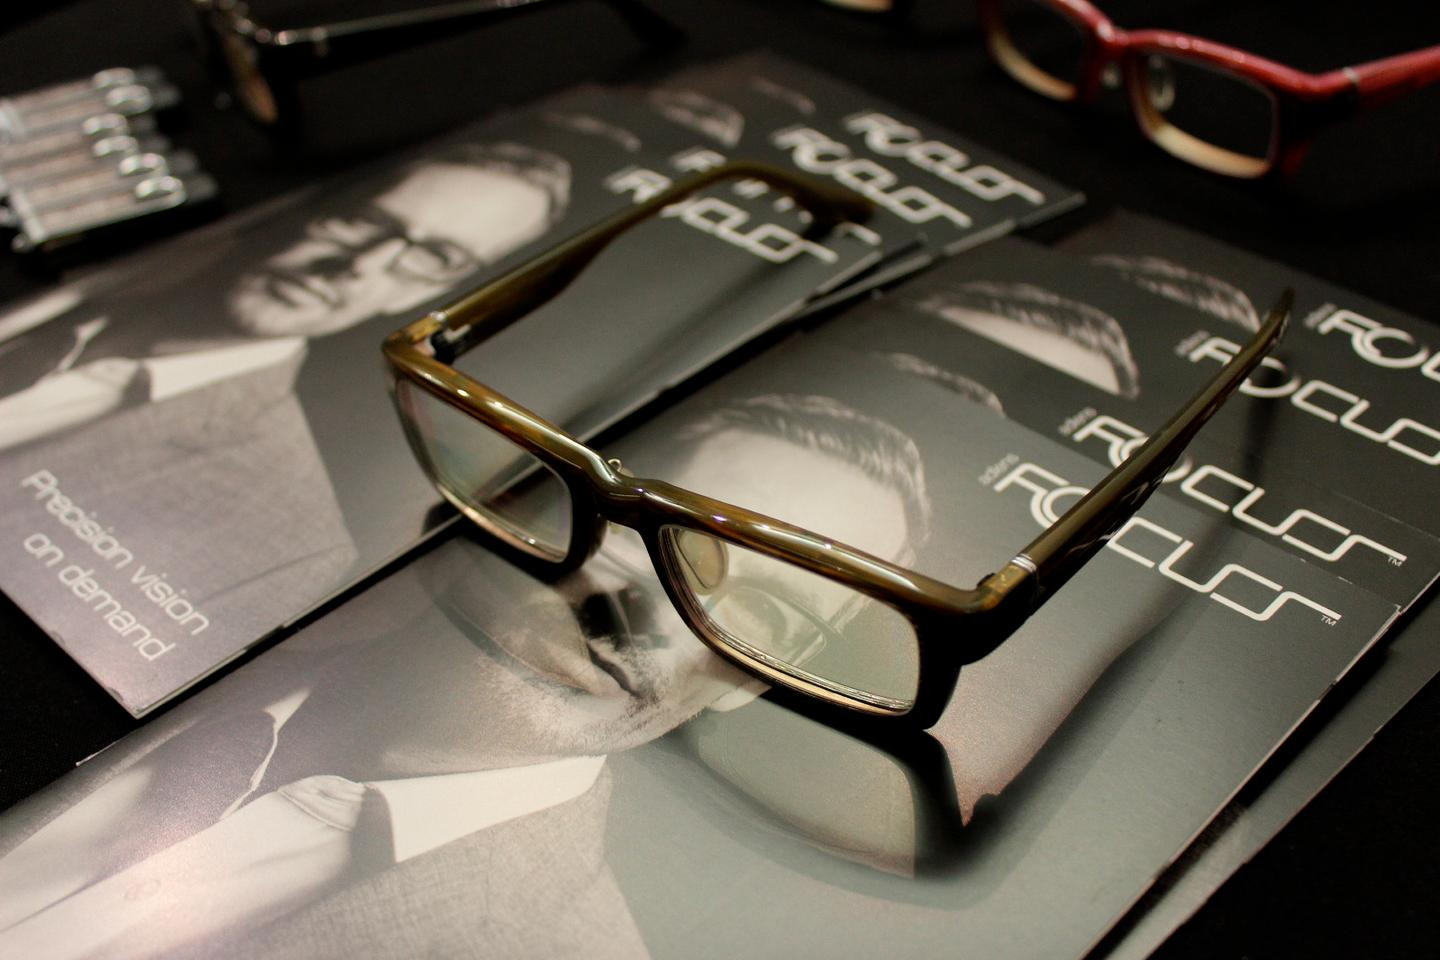 The AdlensFocuss glasses on display at CE Week in New York